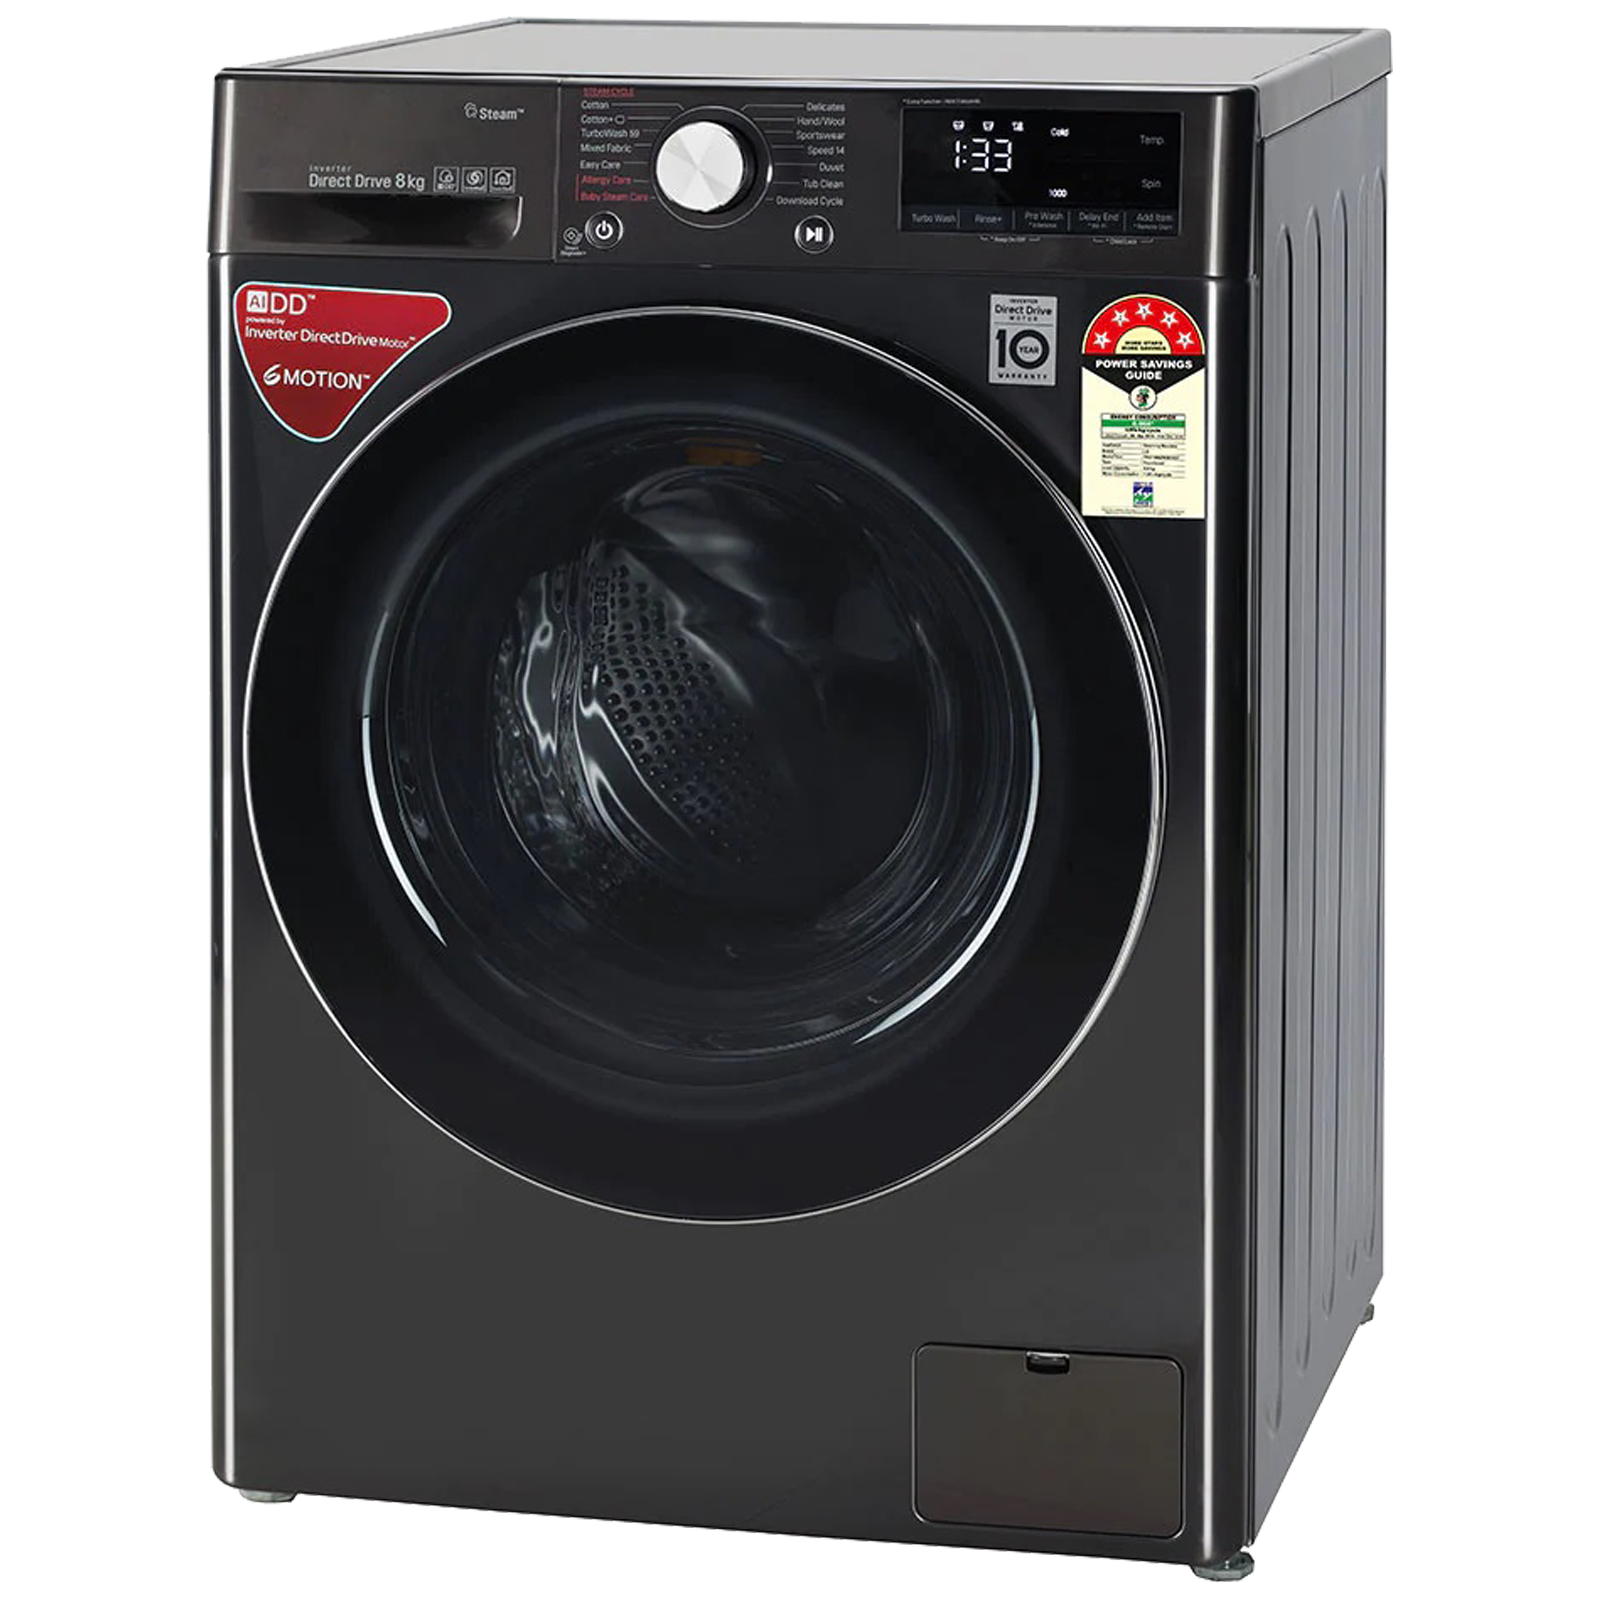 LG 8 kg 5 Star Fully Automatic Front Load Washing Machine (6 Motion Direct Drive Technology, FHV1408ZWB.ABLQEIL, Black Steel)_3